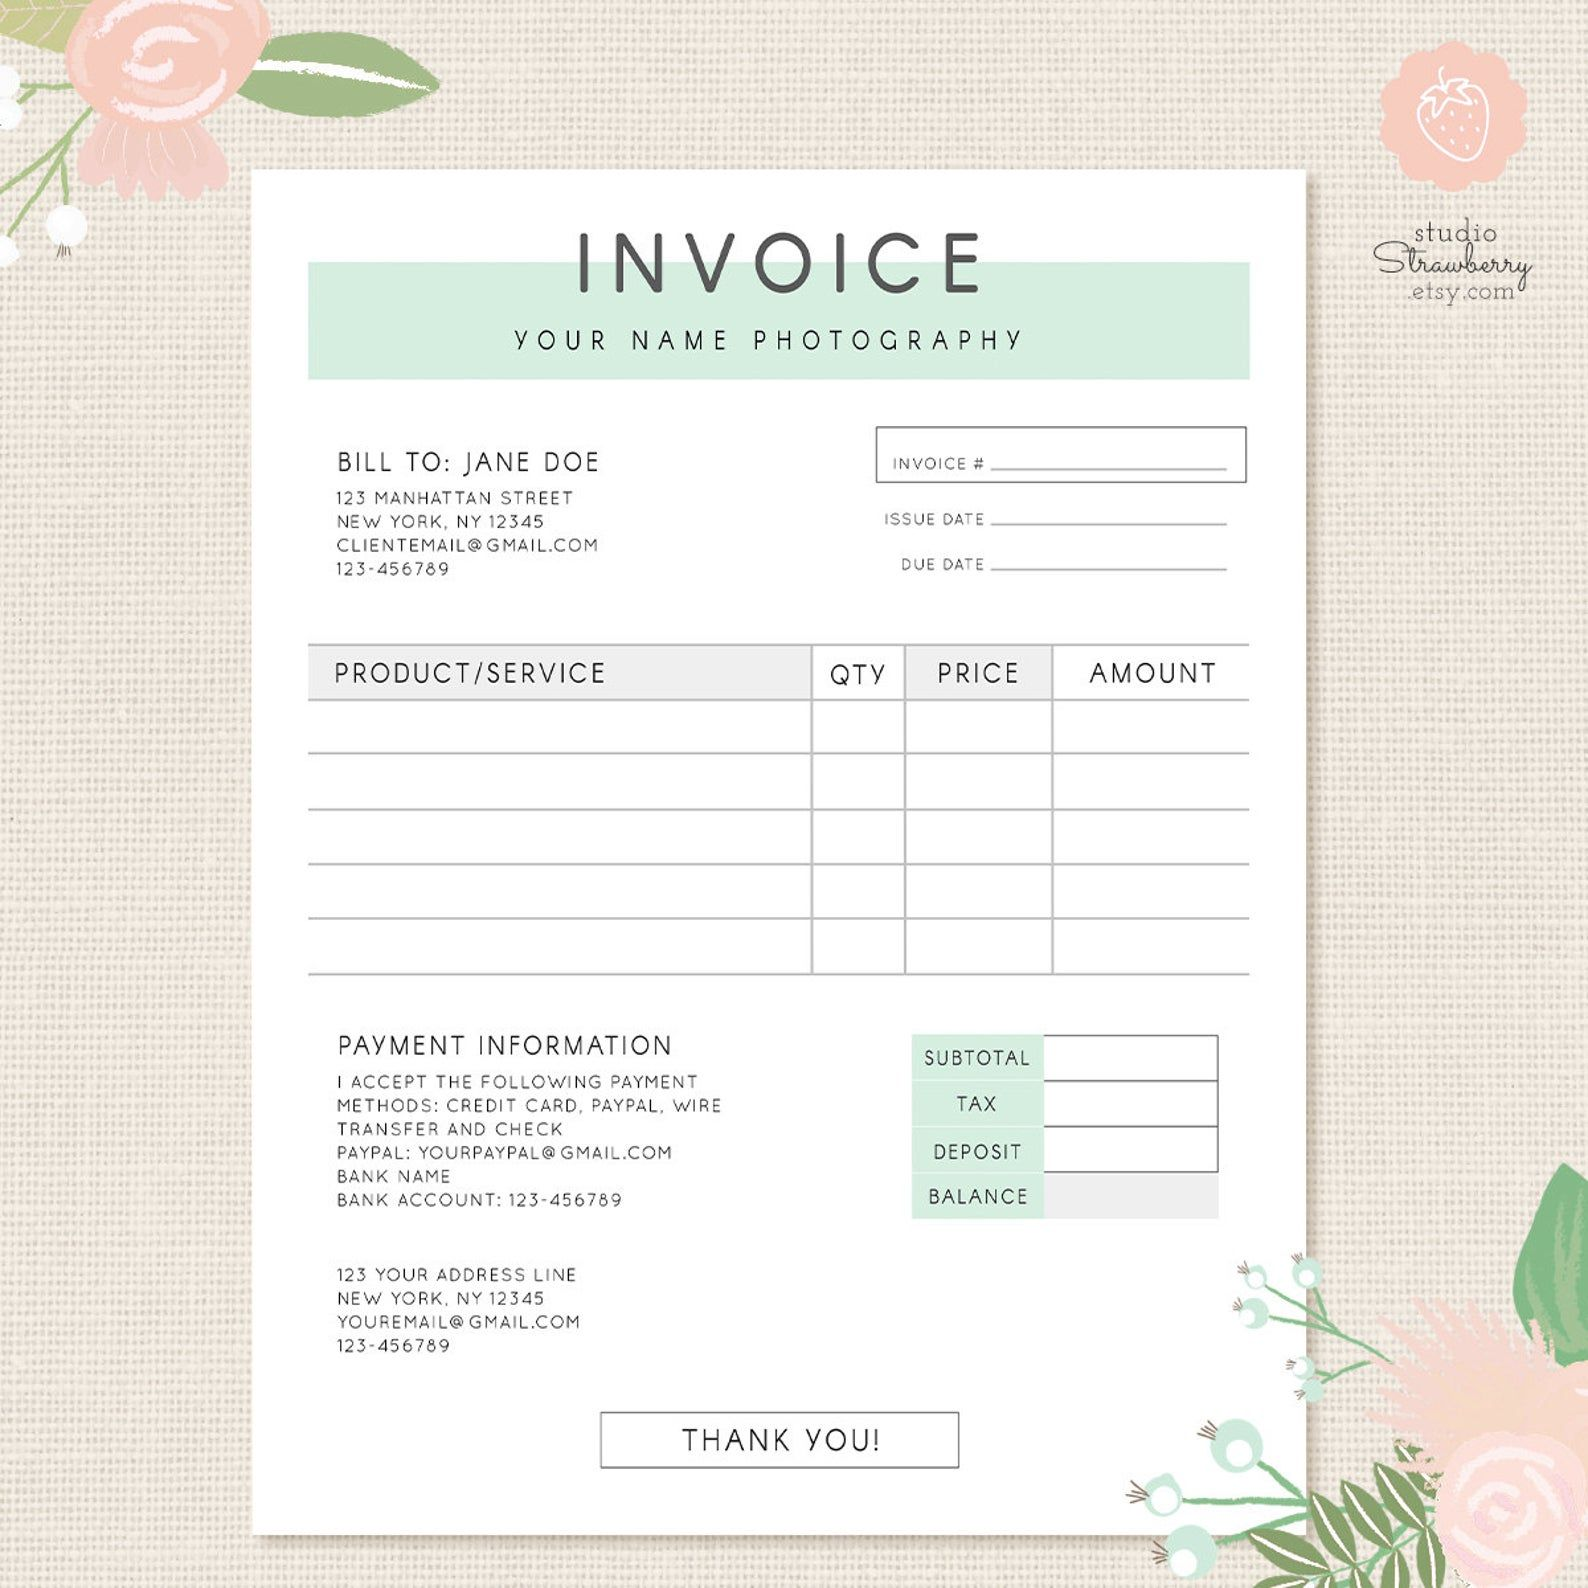 Invoice Template Photography Invoice Business Invoice Etsy Photography Invoice Photography Invoice Template Invoice Design